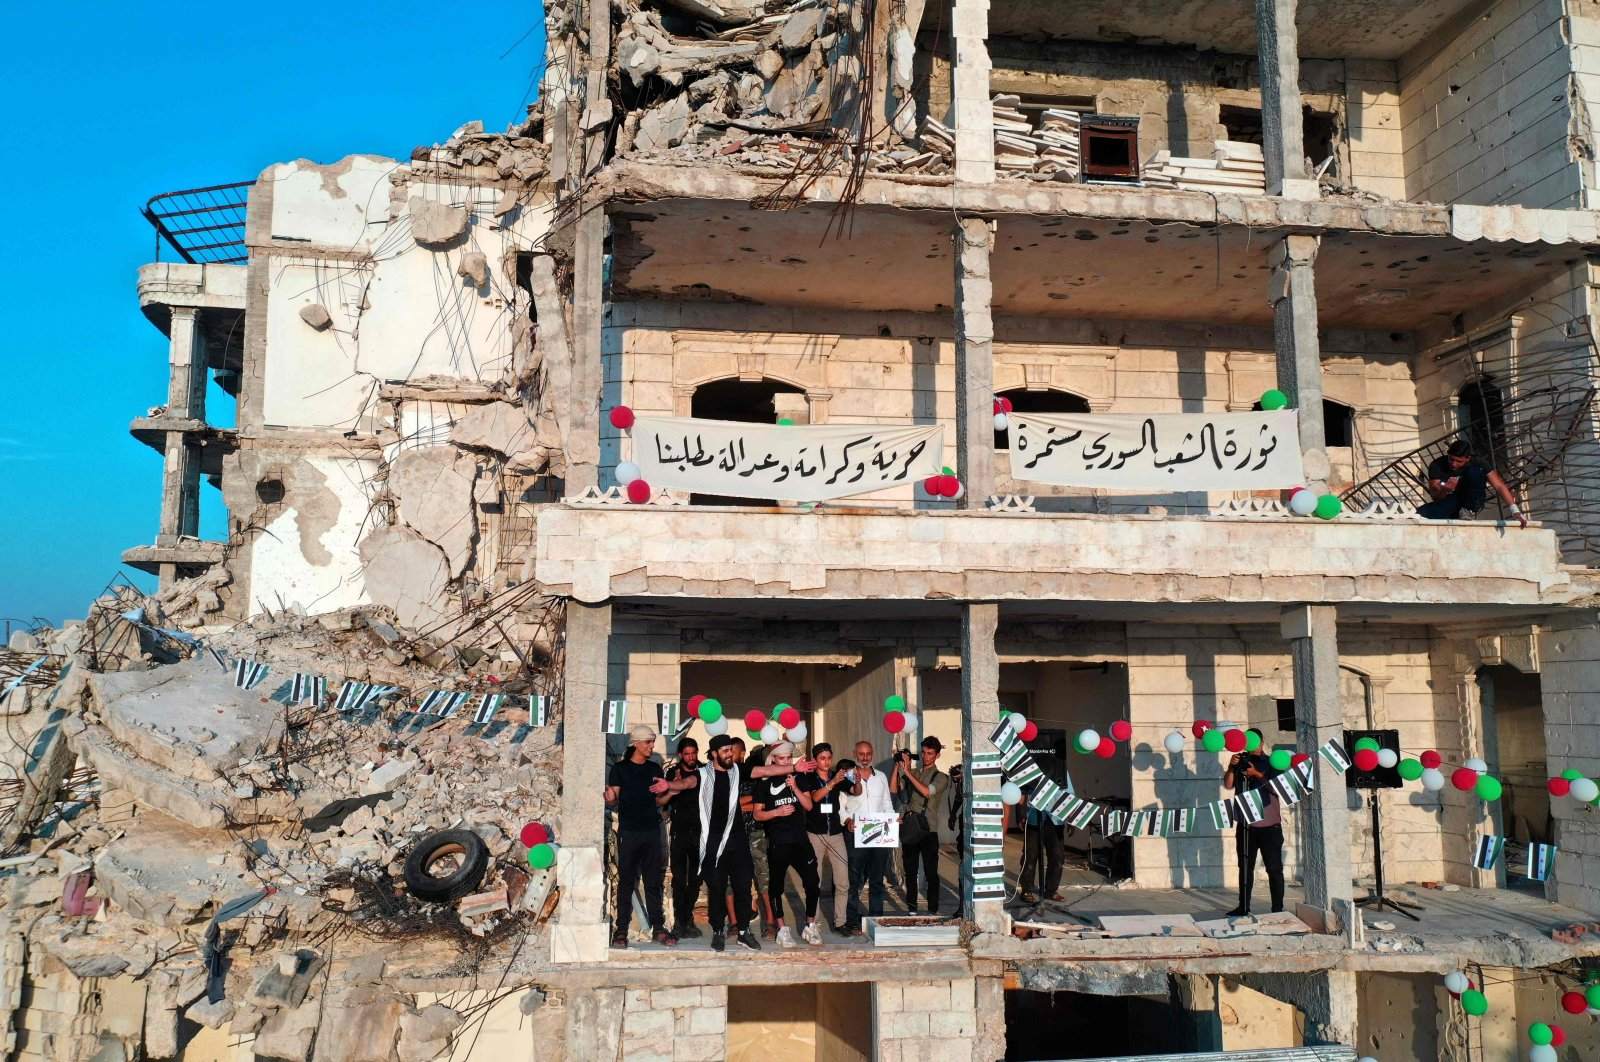 Chanters lead an anti-regime demonstration amid destroyed buildings in the town of Ariha in Syria's opposition-held northwestern Idlib province, Aug. 28, 2020. (AFP Photo)